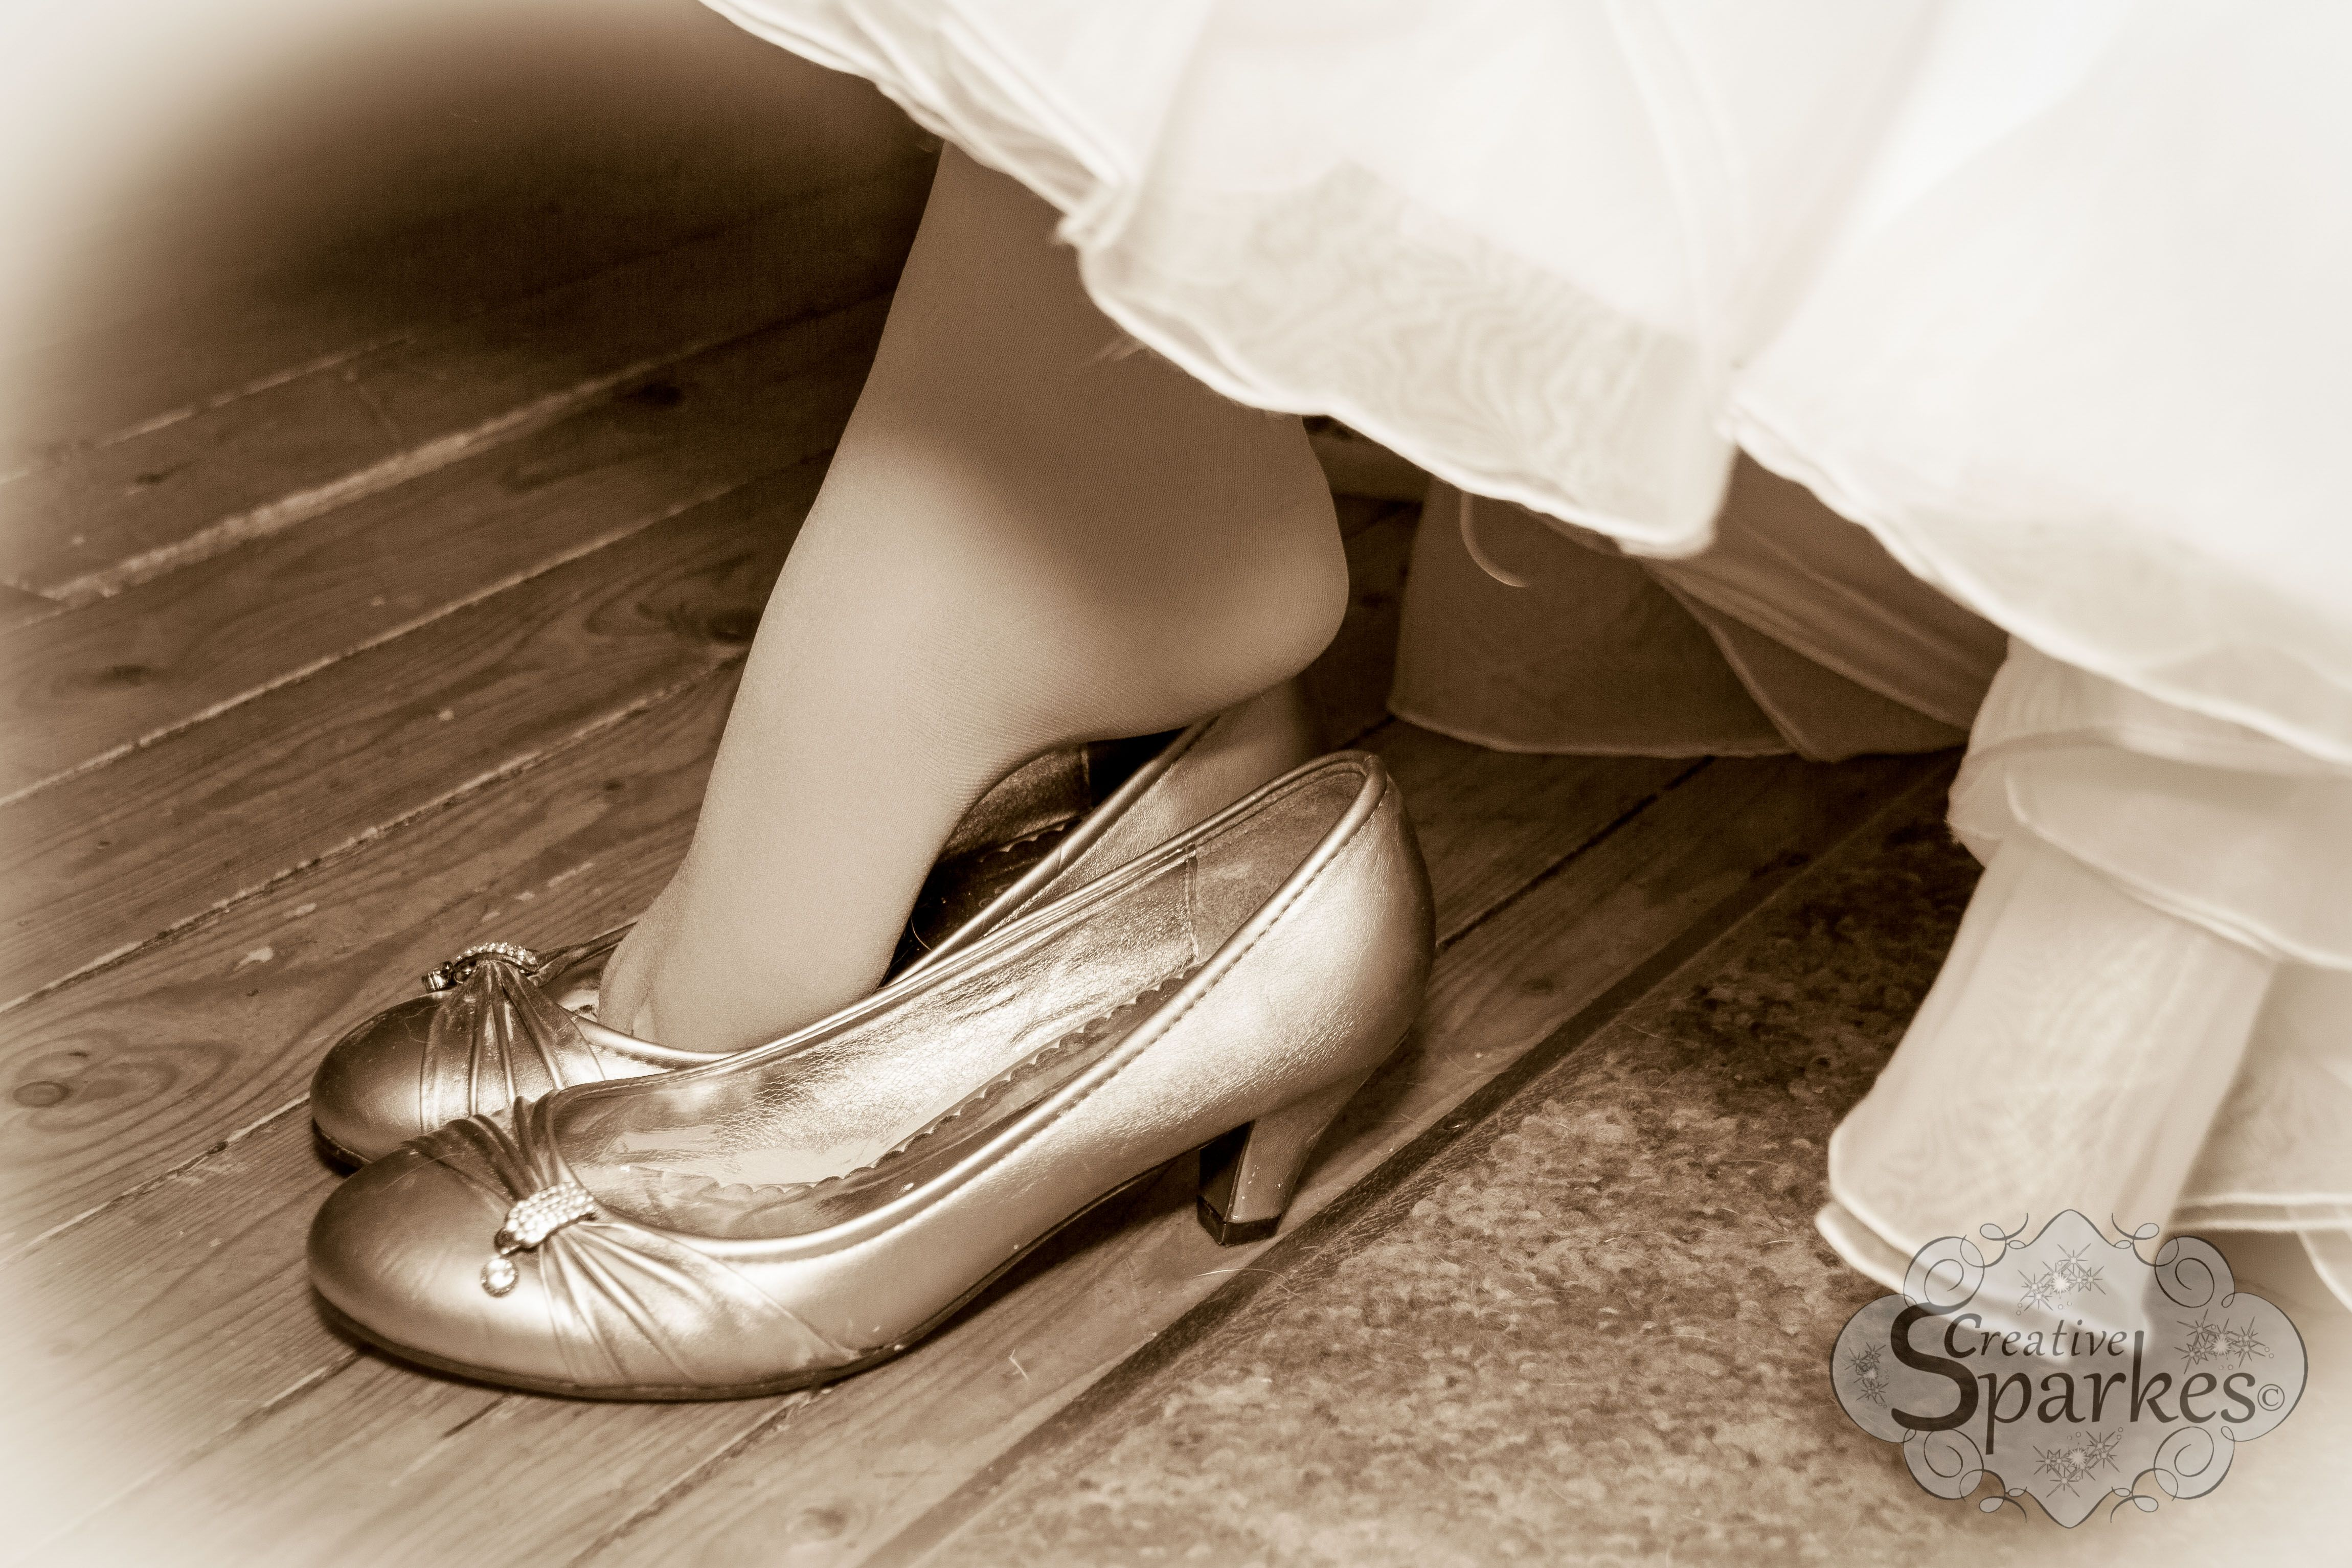 Like Cinderella this beautiful Bride slipped on her shoes, ready for her big day.